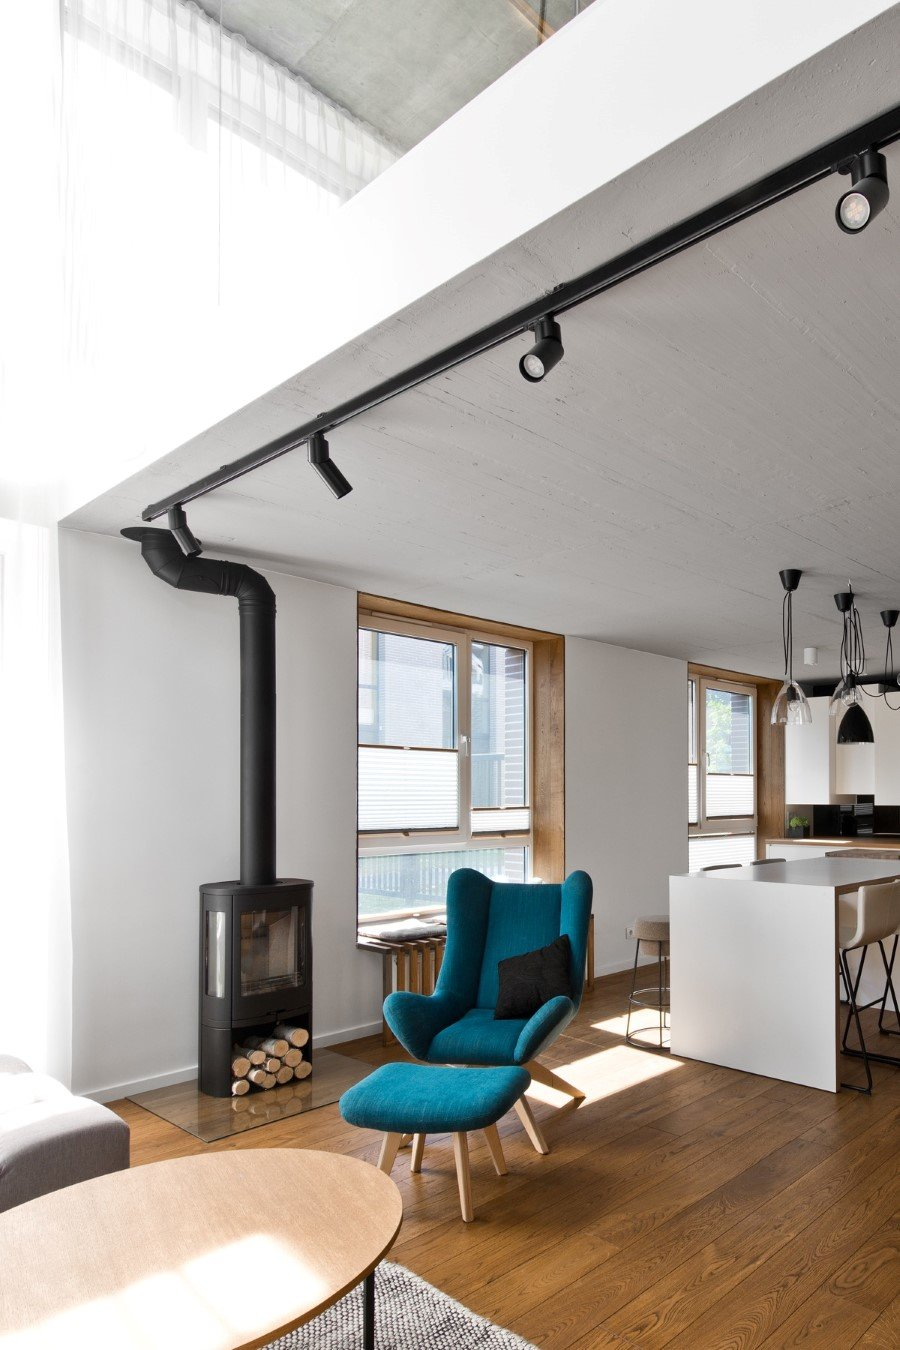 Scandinavian Modern Loft Interior by InArch (15)